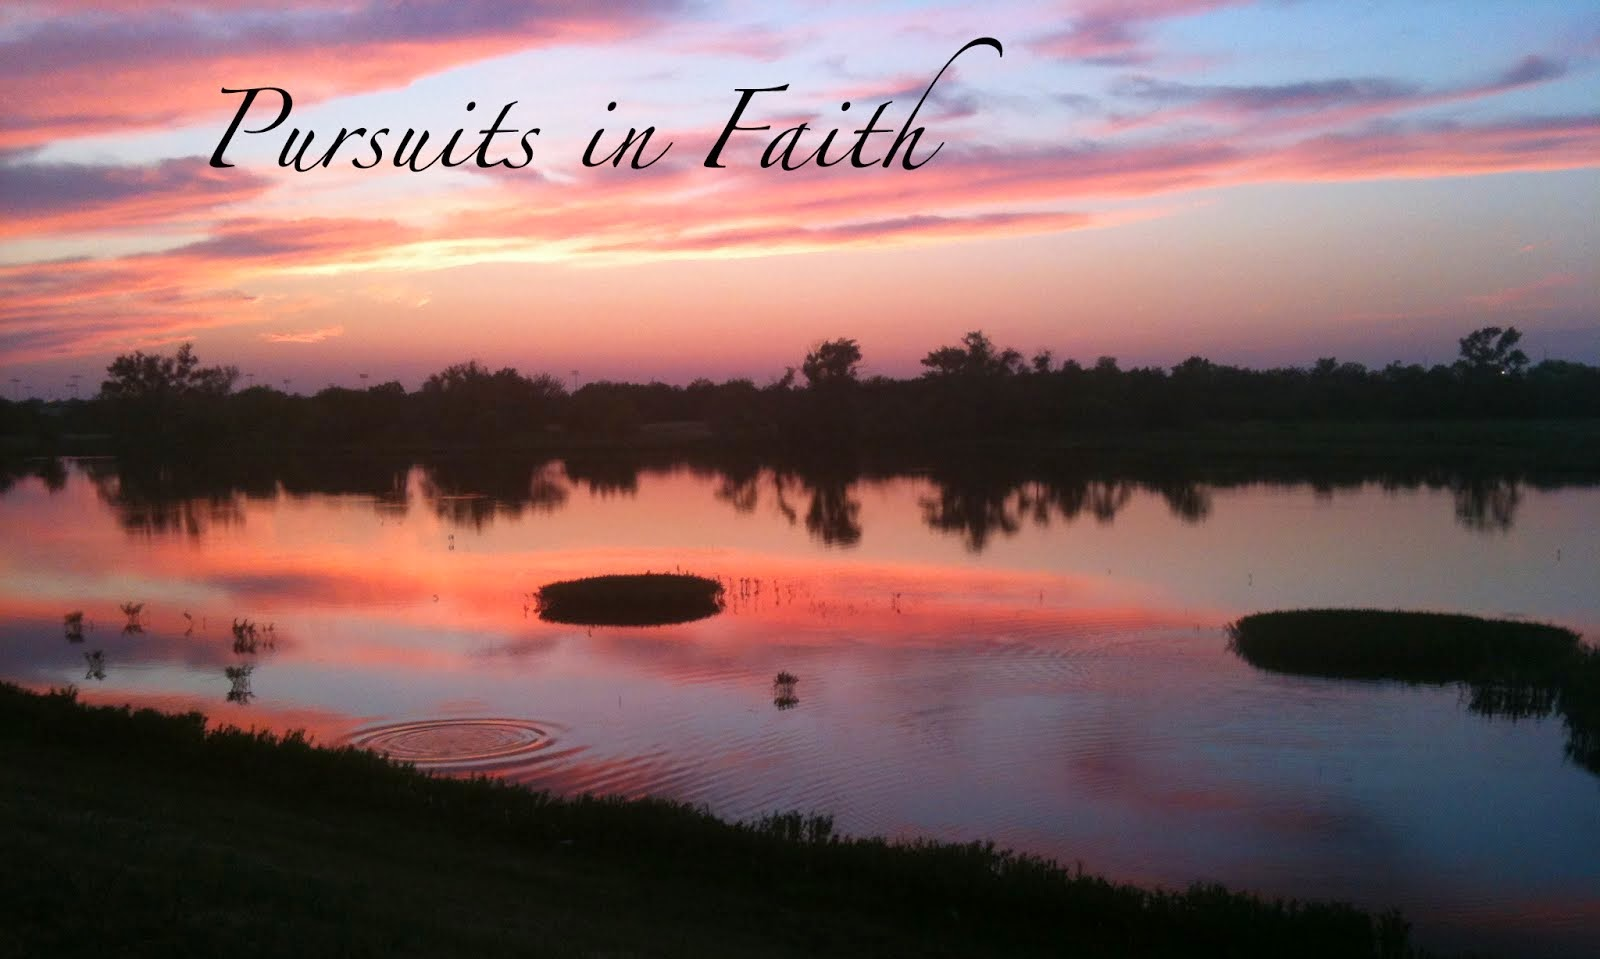 My Pursuits in Faith